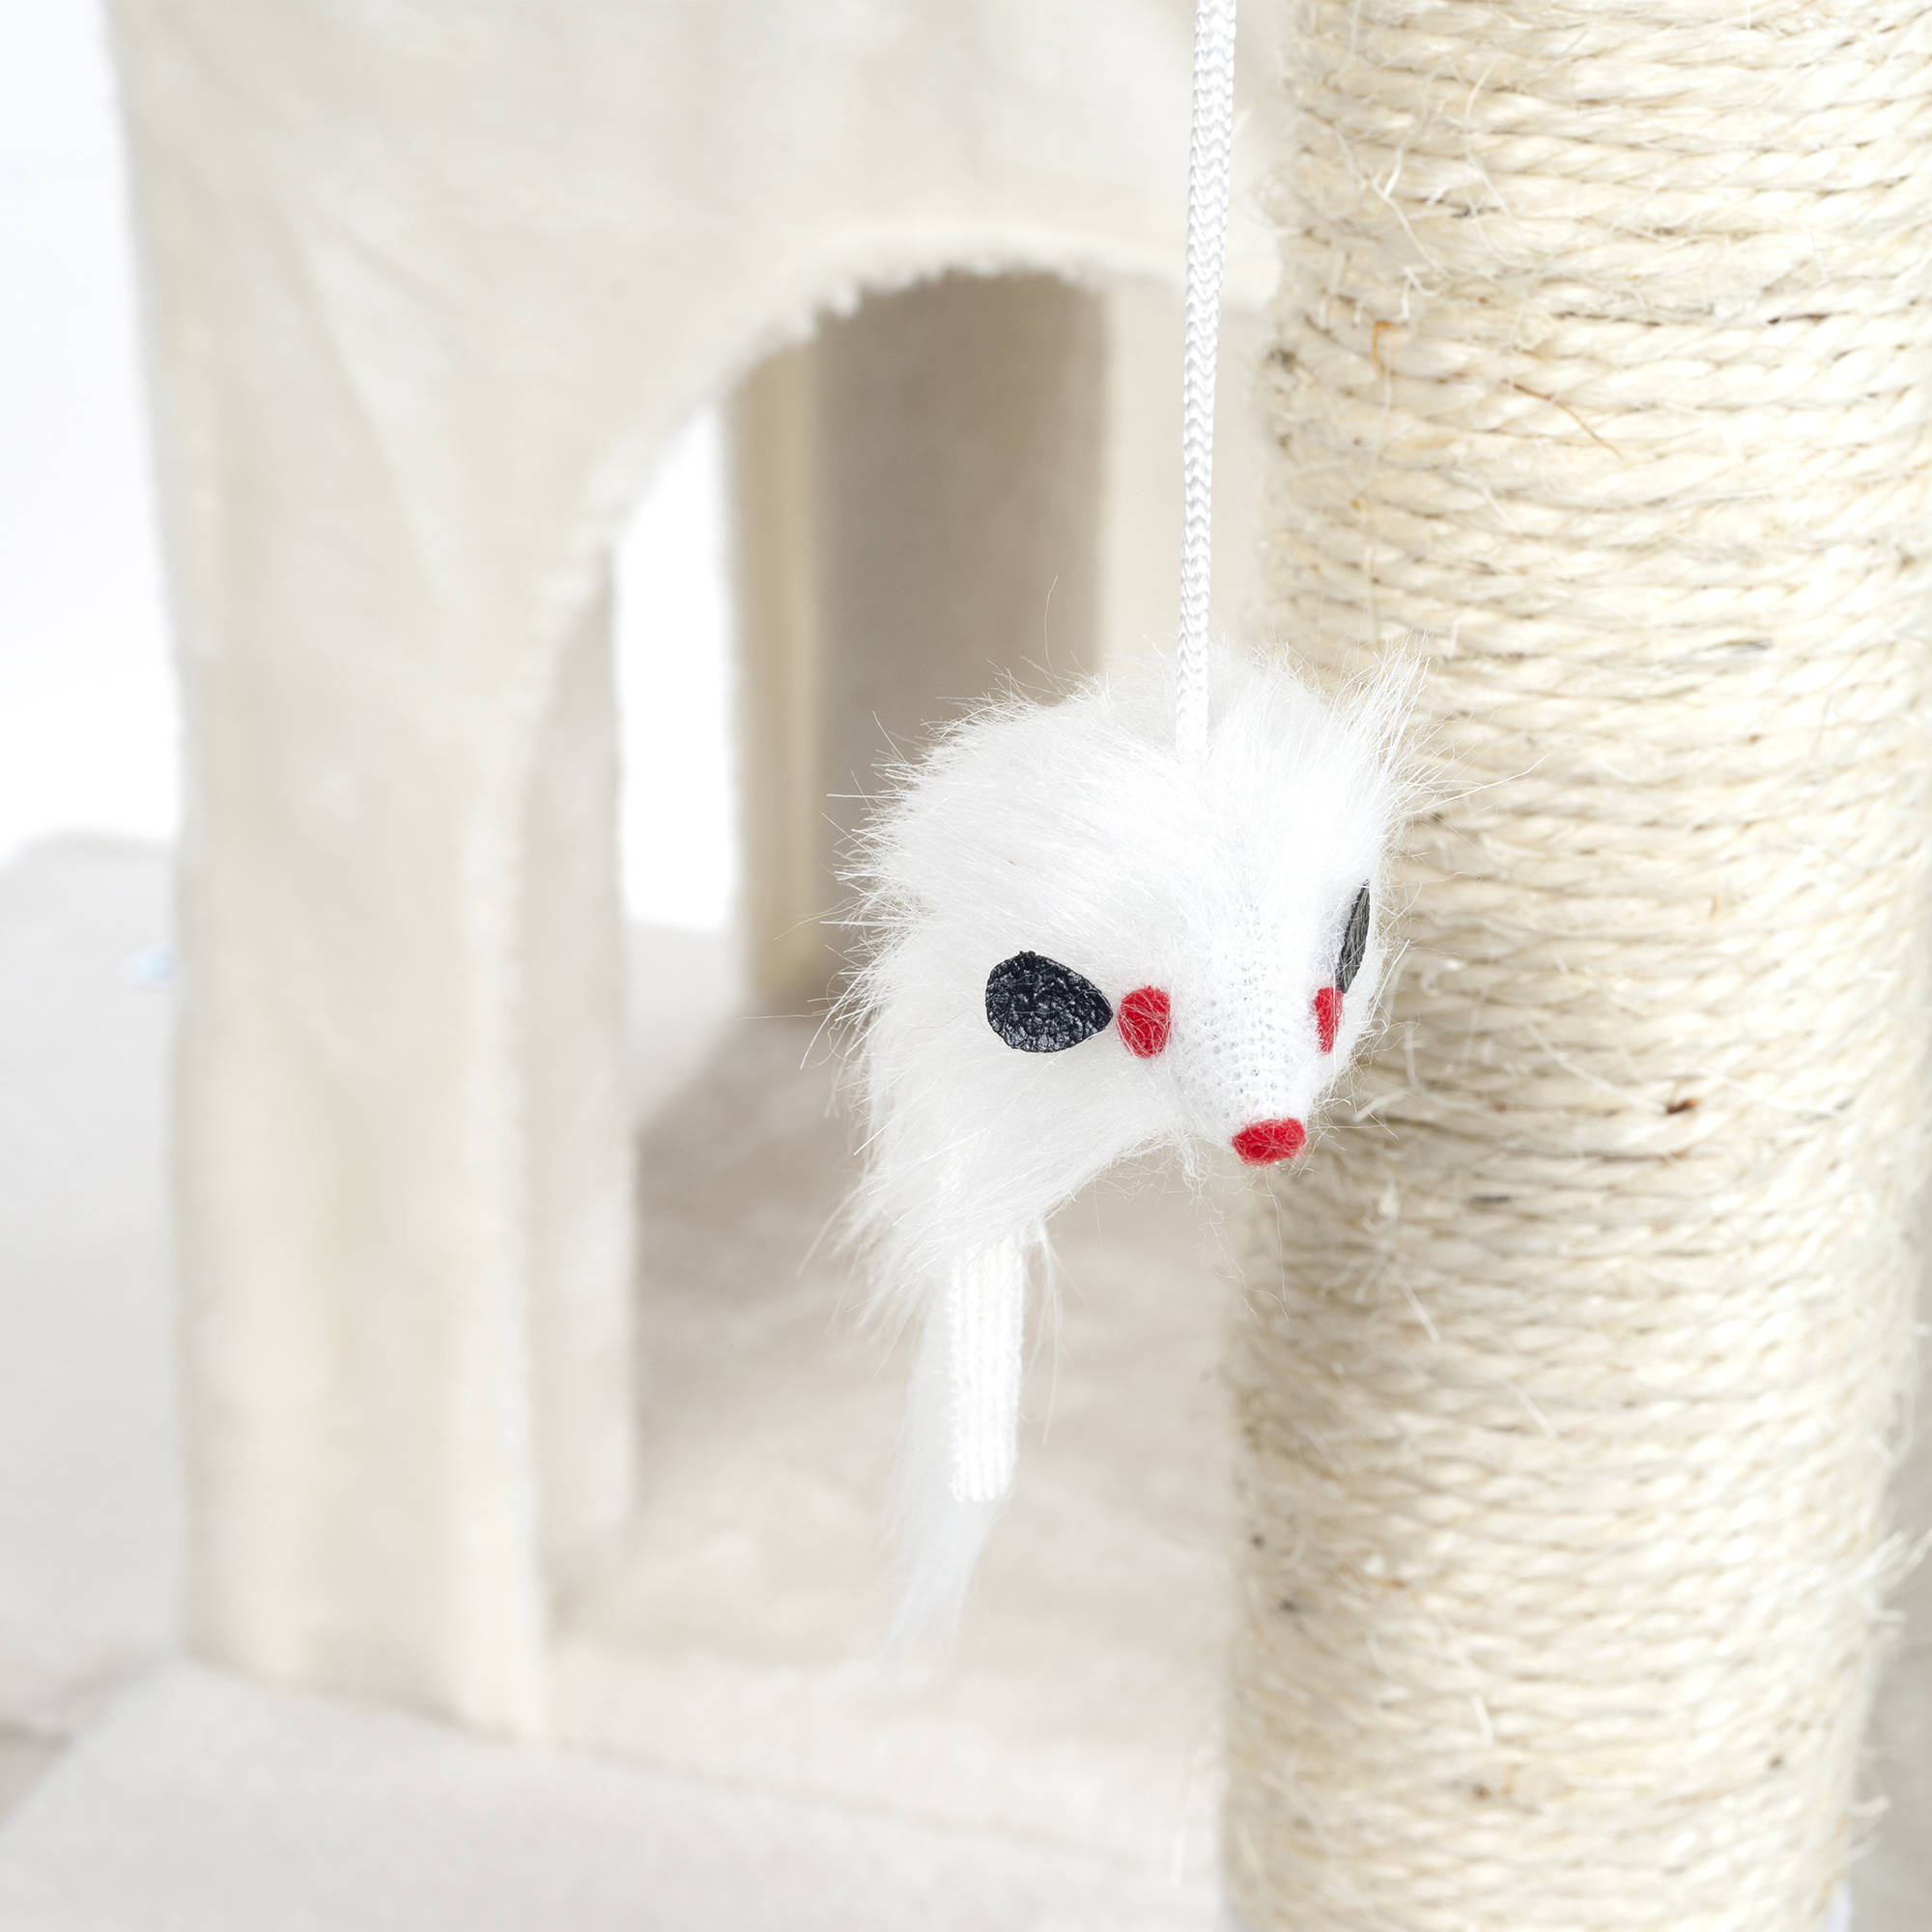 penthouse sleep and play cat tree by petmaker 4 ft tall white image 3